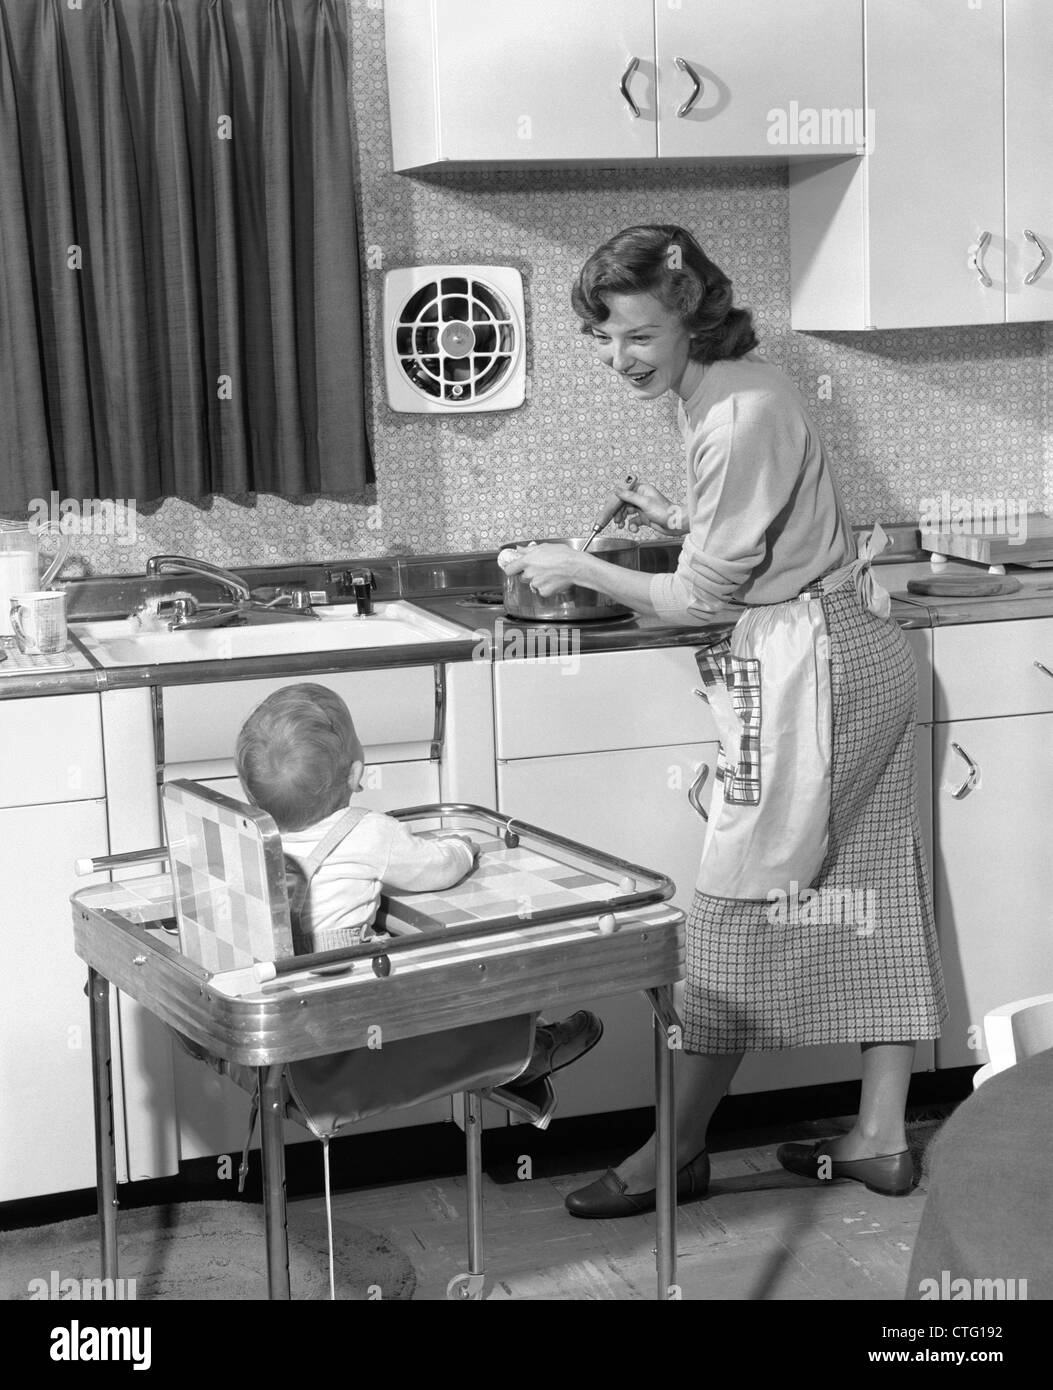 1950s Woman Mother In Home Kitchen Cooking Pot On Stove